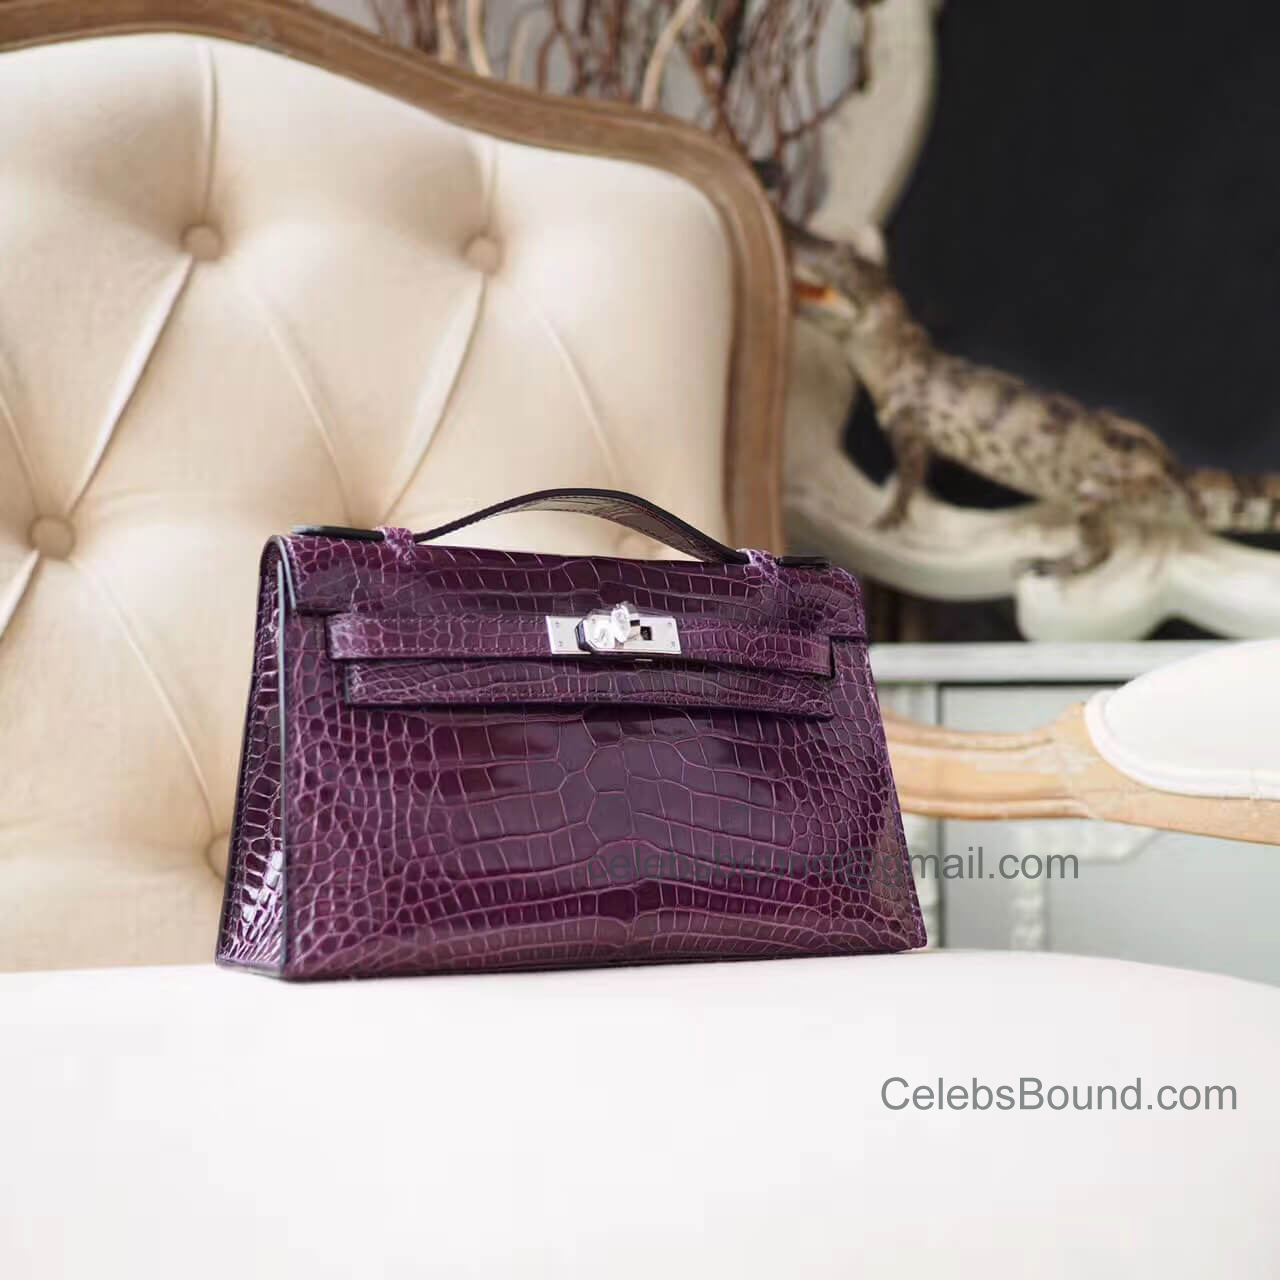 Replica Hermes Mini Kelly 22 Pochette Bag in n5 Cassis Shiny Alligator PHW